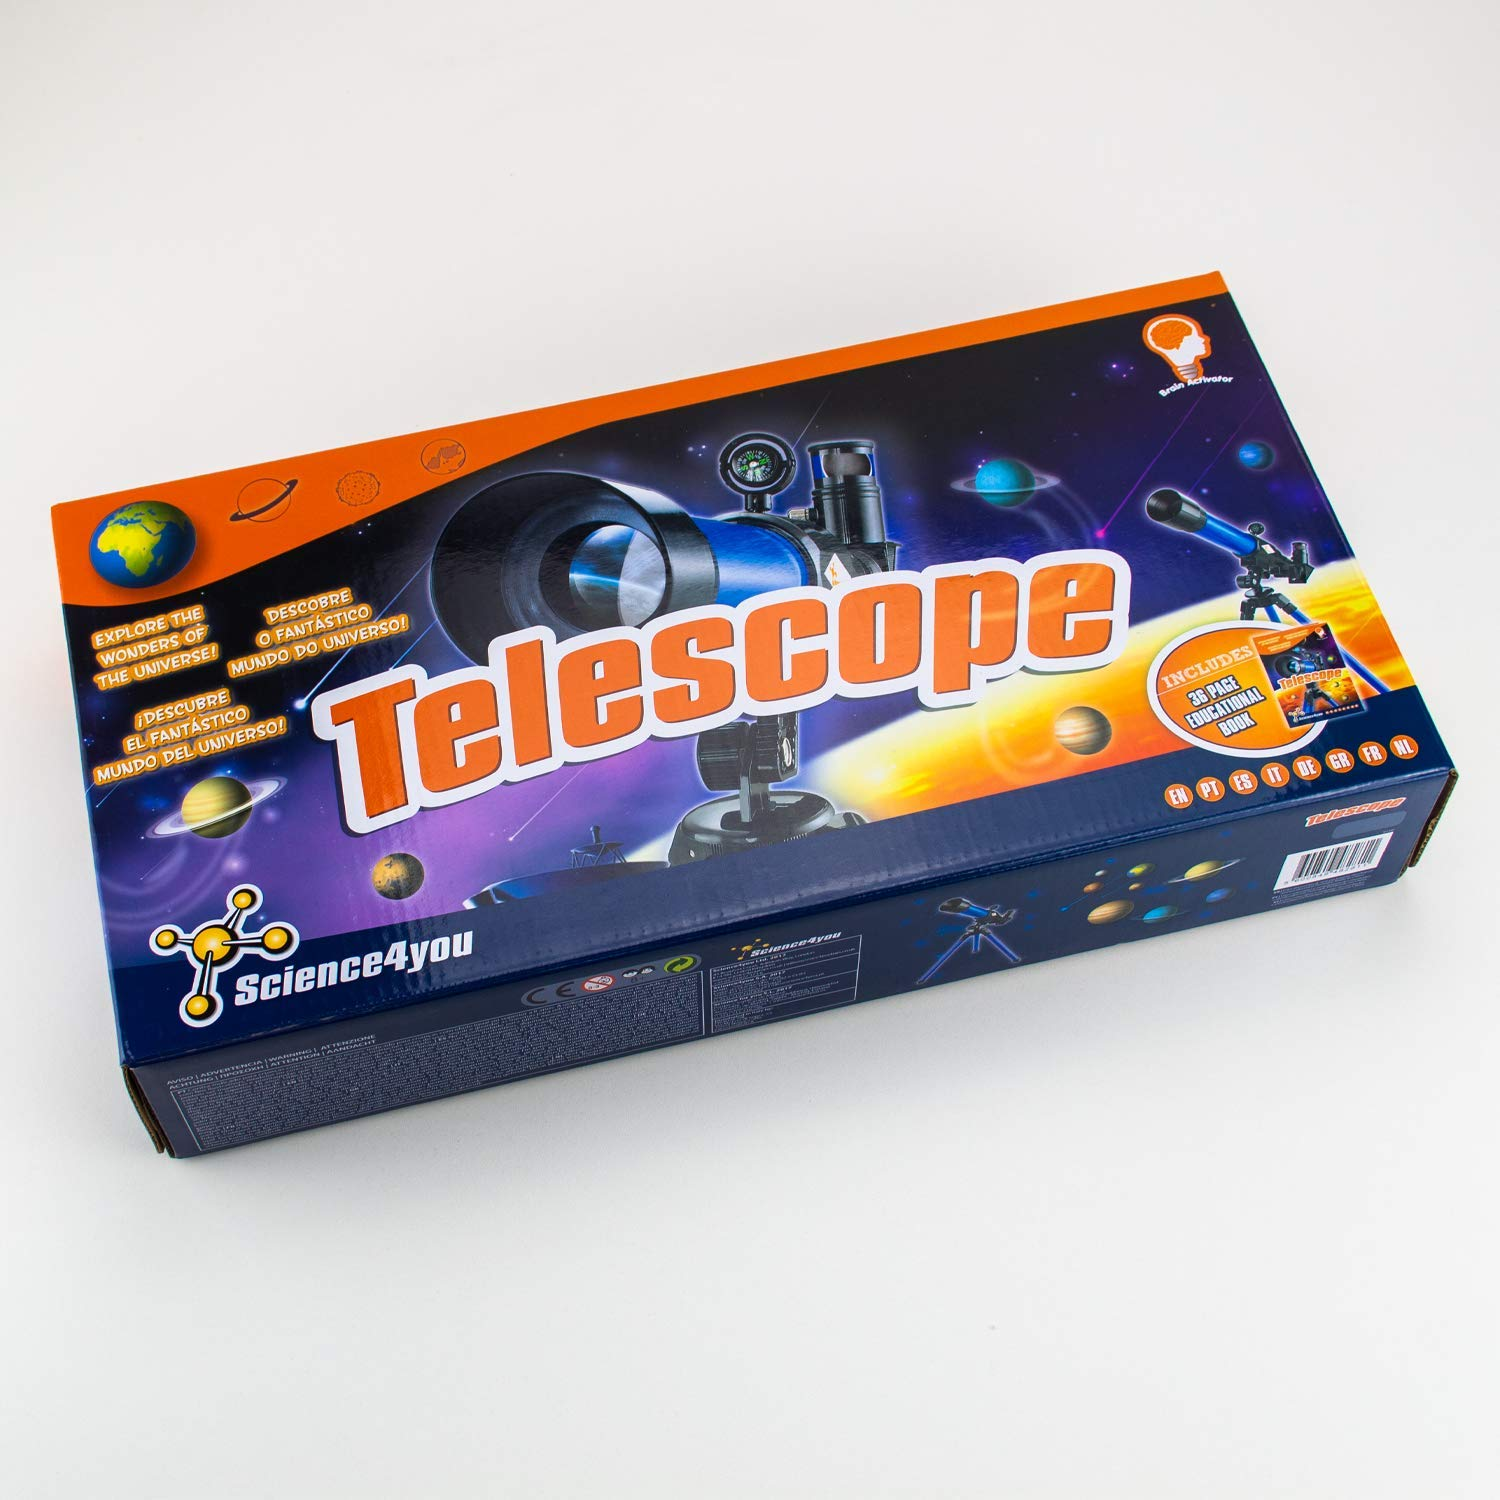 Science4you Telescope Educational Science Toy STEM Toy ...